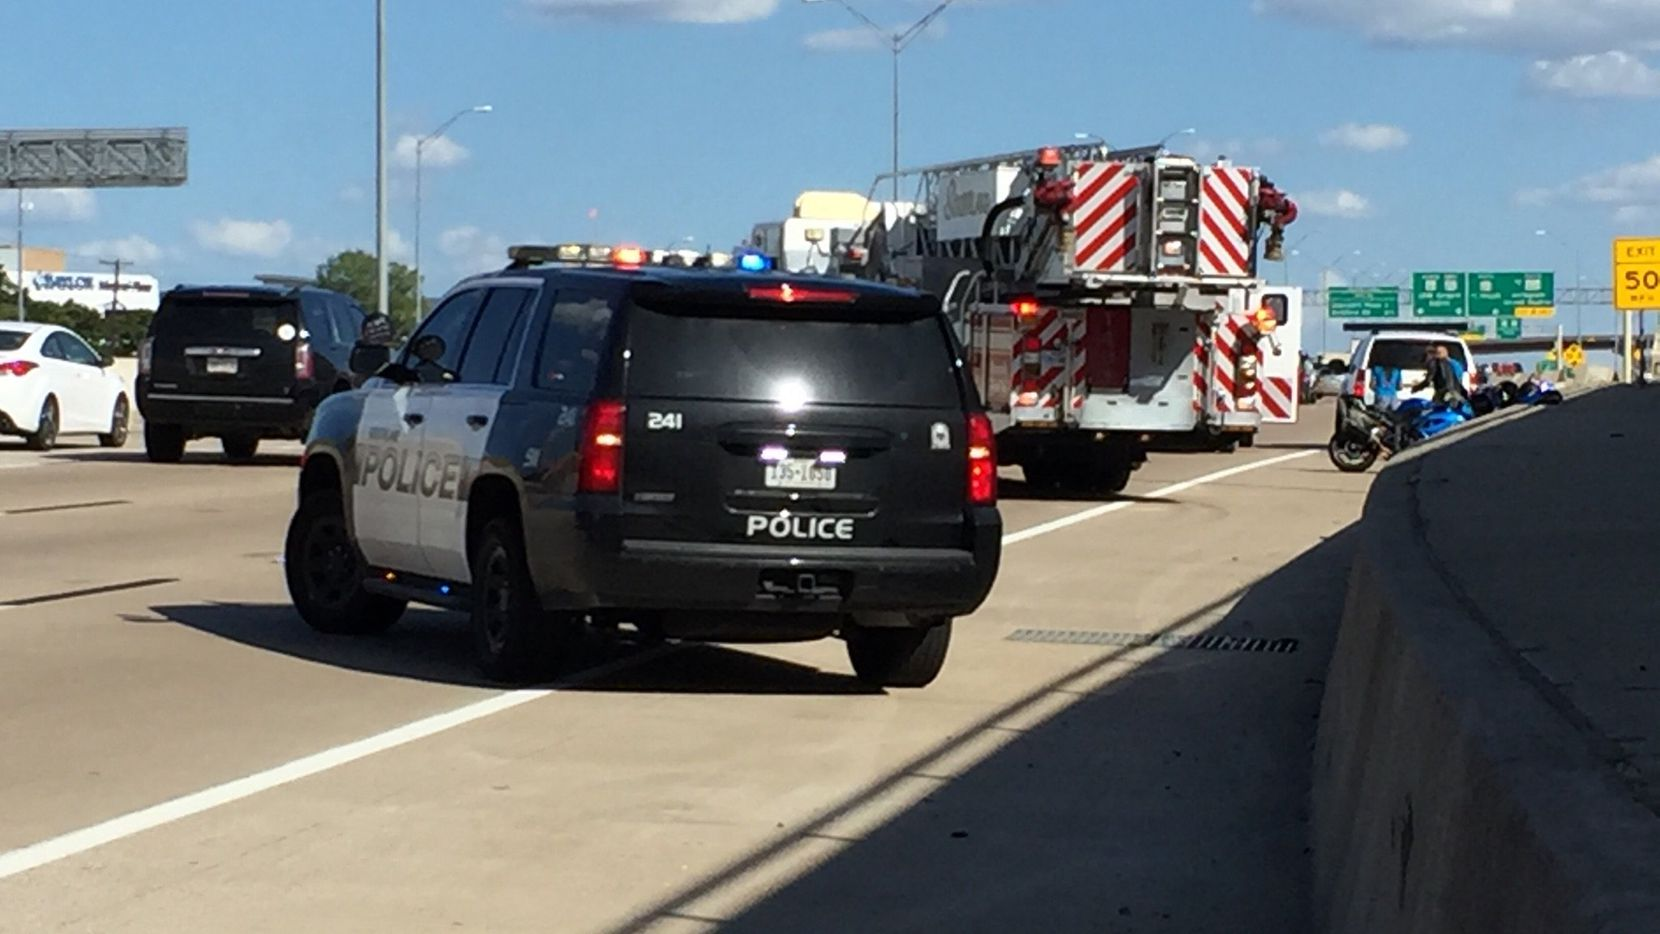 Southlake police block off traffic on State Highway 114 after about 100 motorcyclists caused the road to shut down after one of them crashed Saturday.